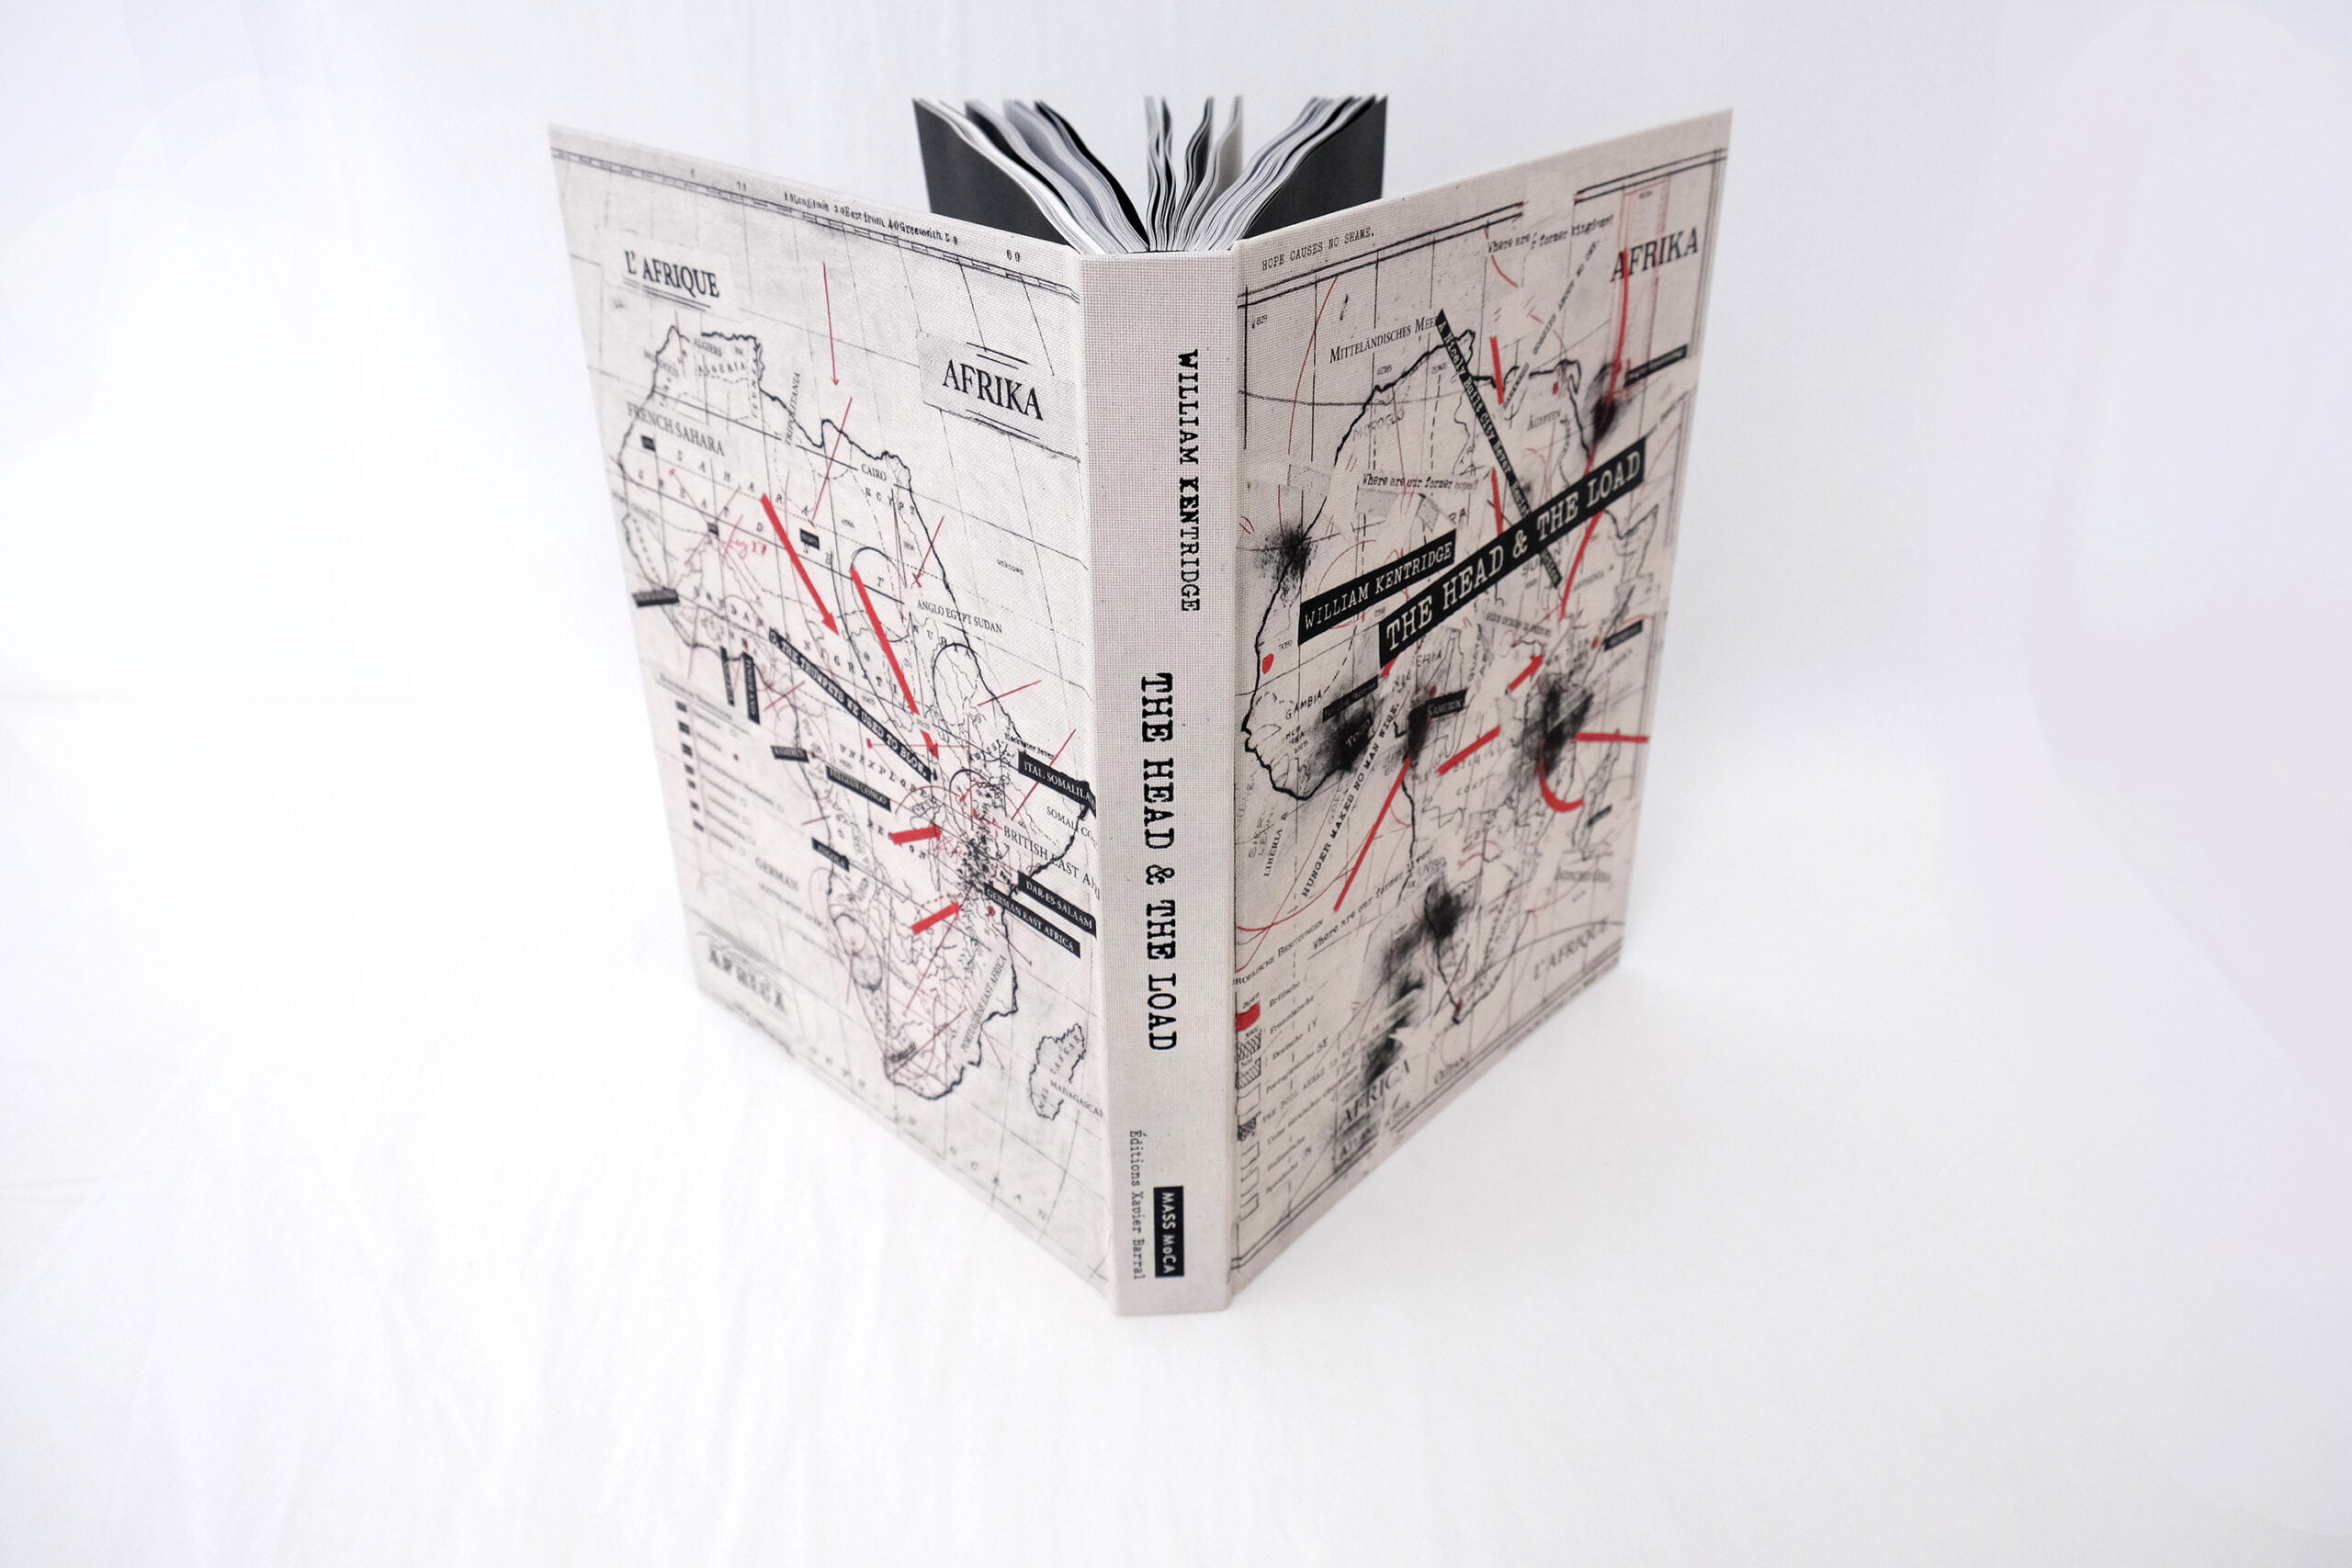 NEW ARRIVALS: WILLIAM KENTRIDGE